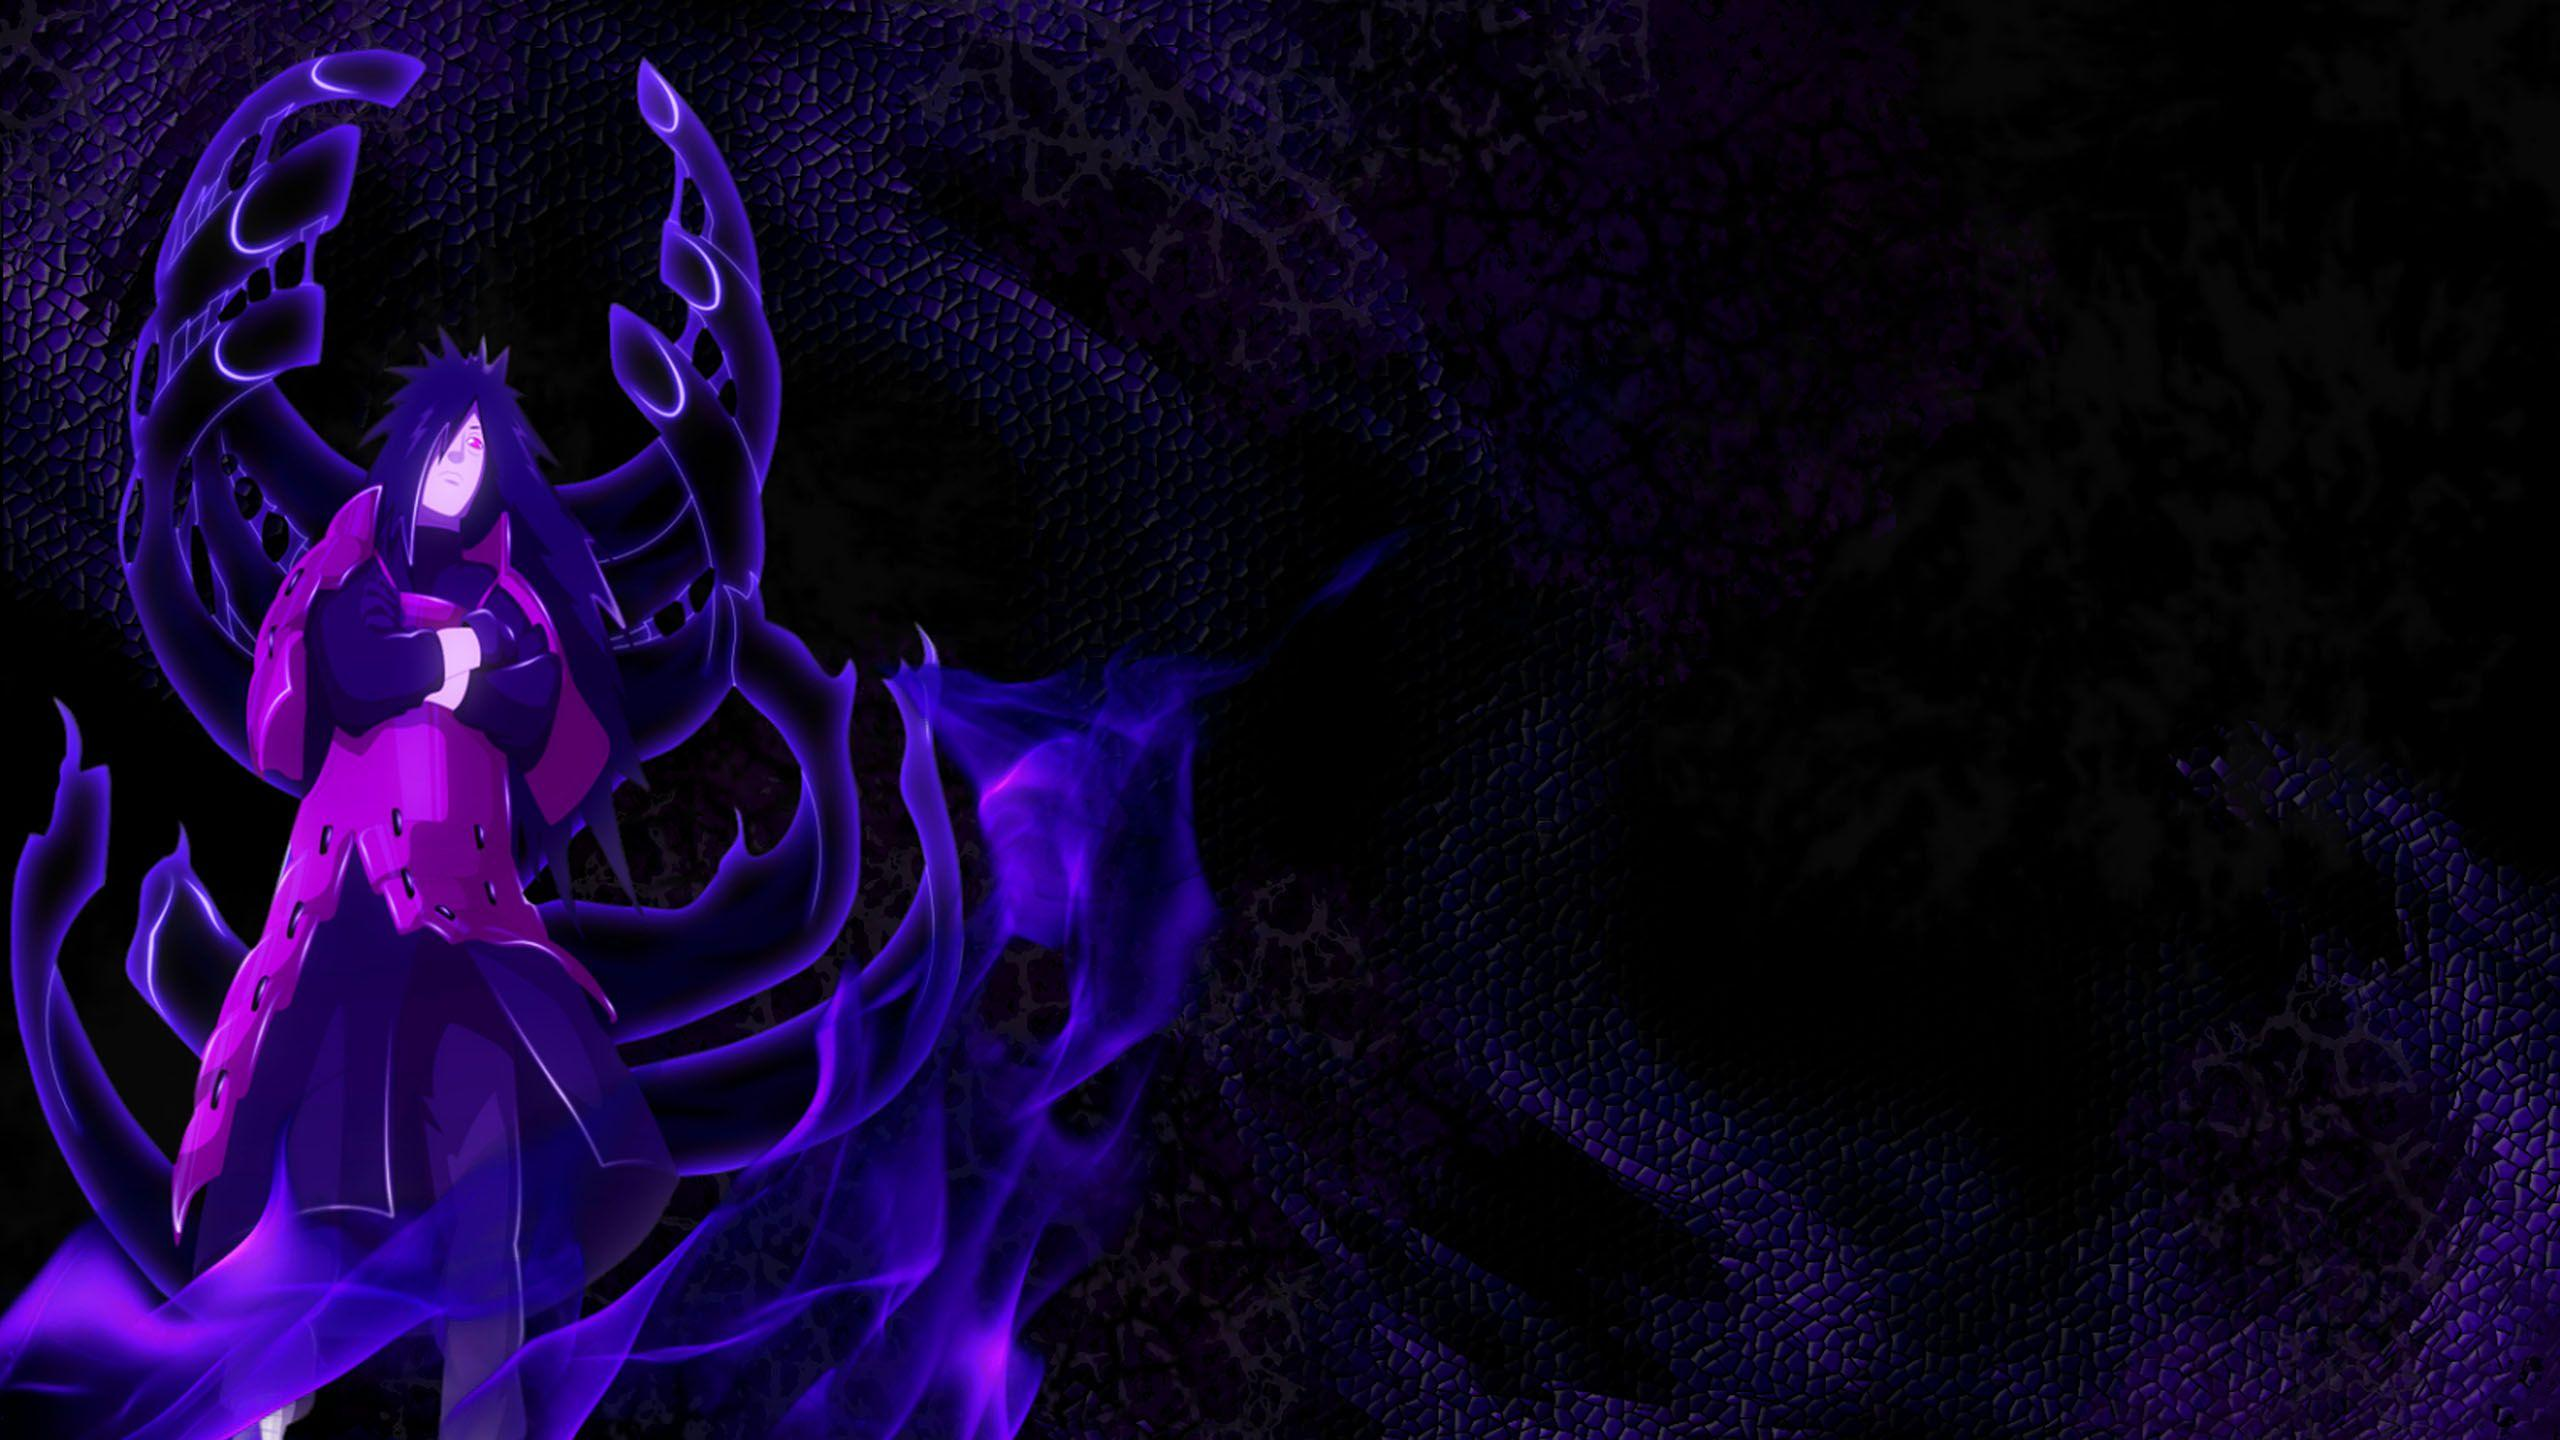 Itachi Uchiha Susanoo Wallpaper Hd: Itachi Uchiha Susanoo Wallpapers HD